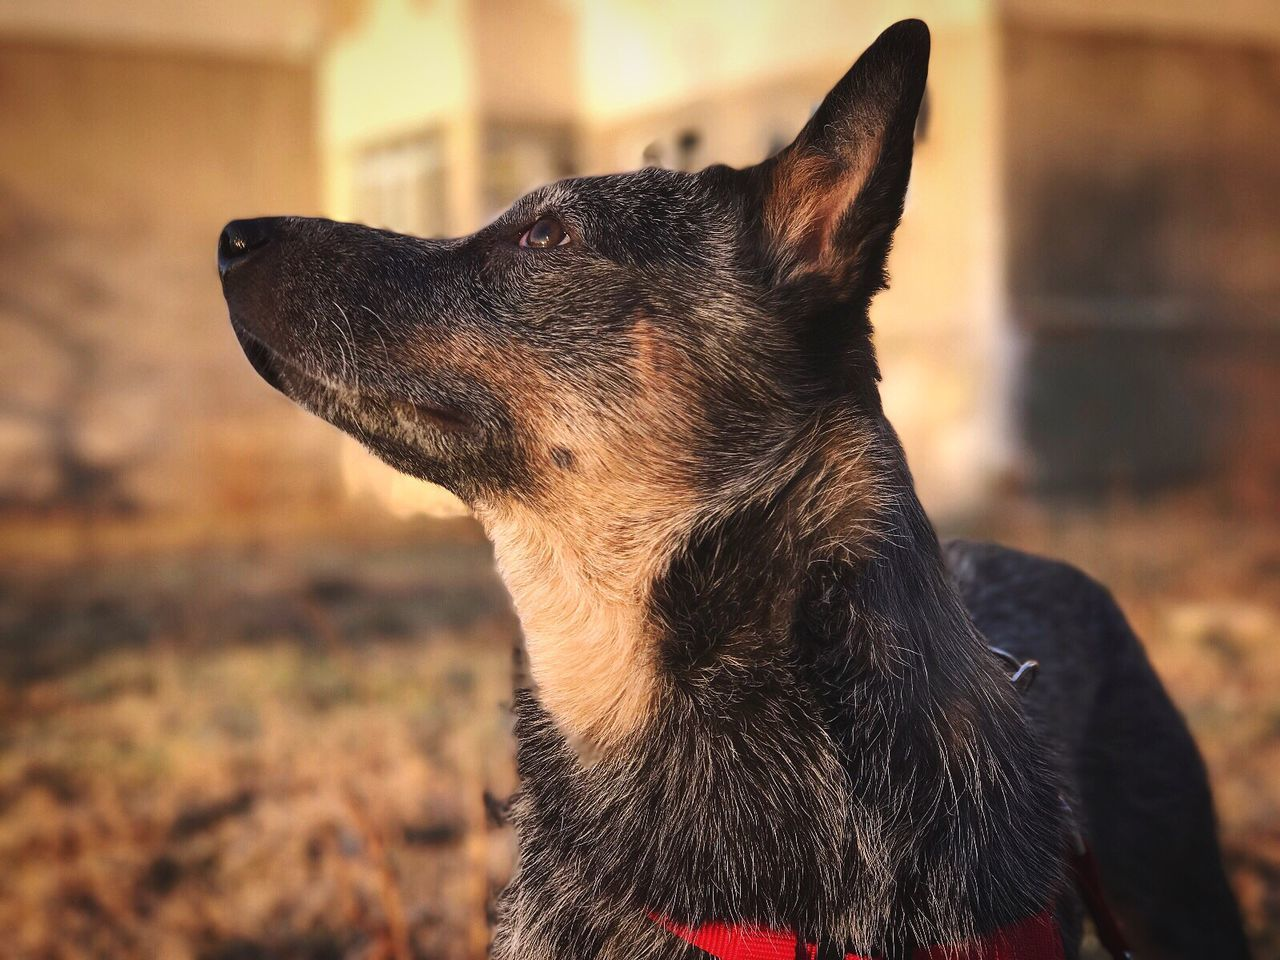 The sun is back! One Animal Animal Themes Focus On Foreground Mammal Domestic Animals Pets Close-up No People Dog Outdoors Day ACD  Australian Cattle Dog Blue Heeler Thinking Life City